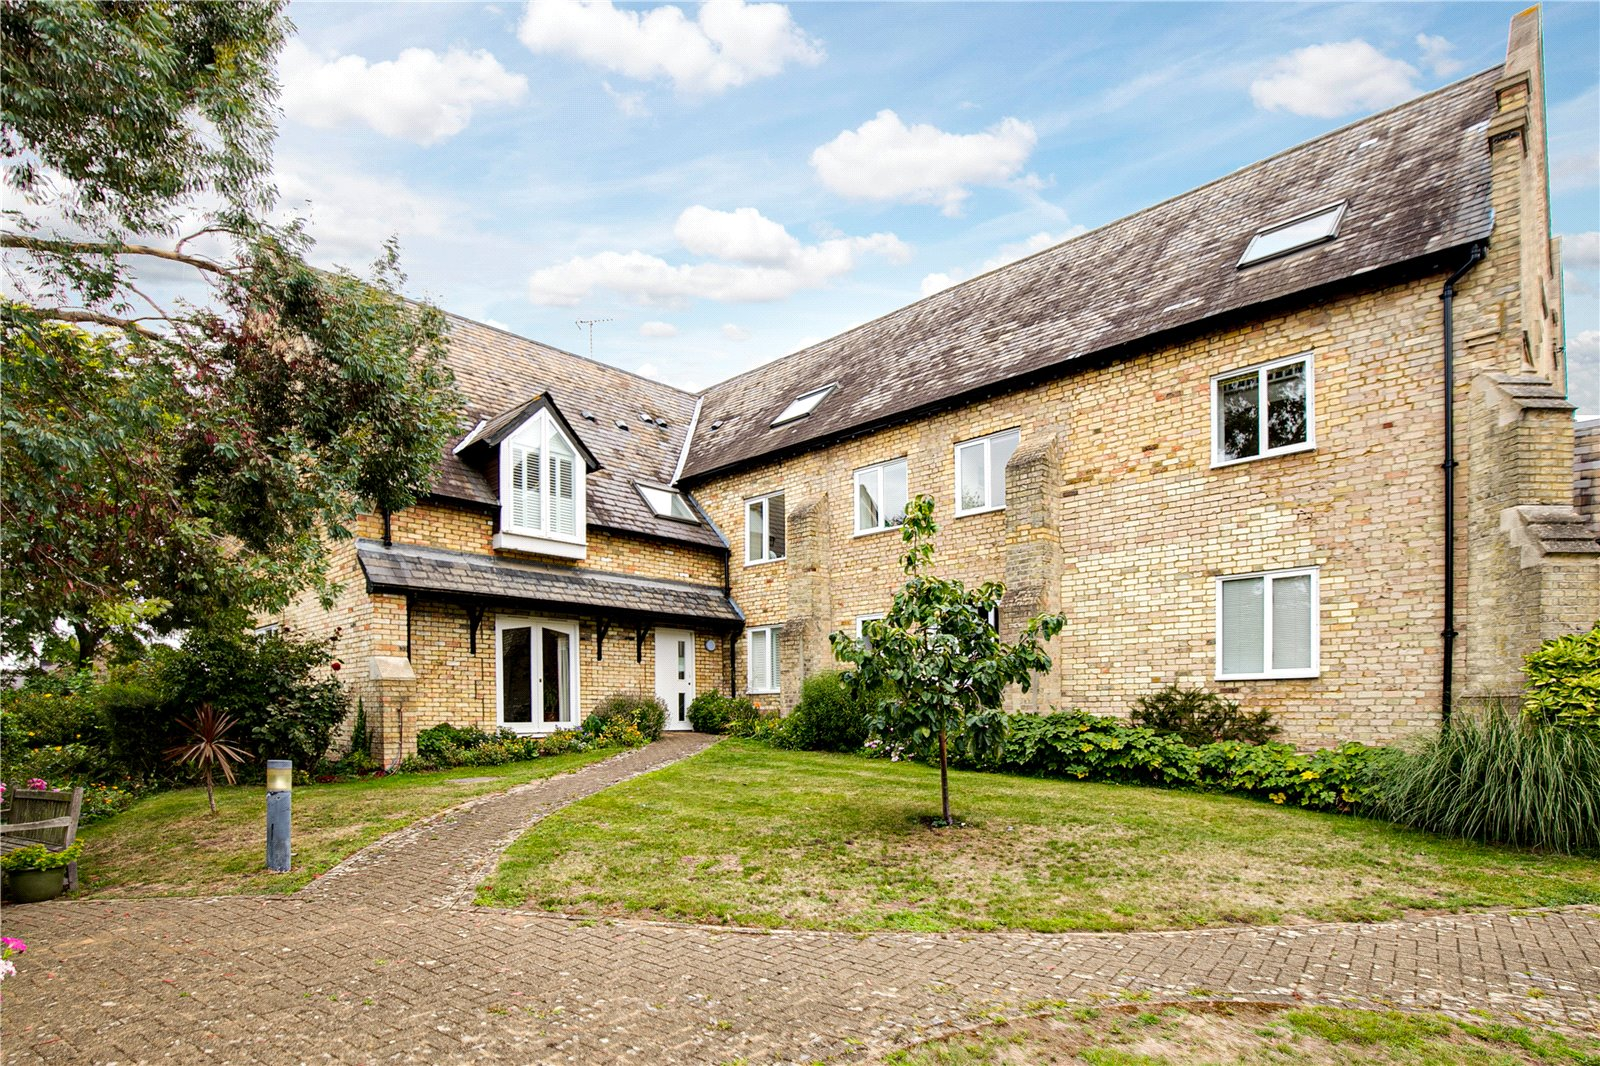 Apartment on Richmond Hill with no stamp duty